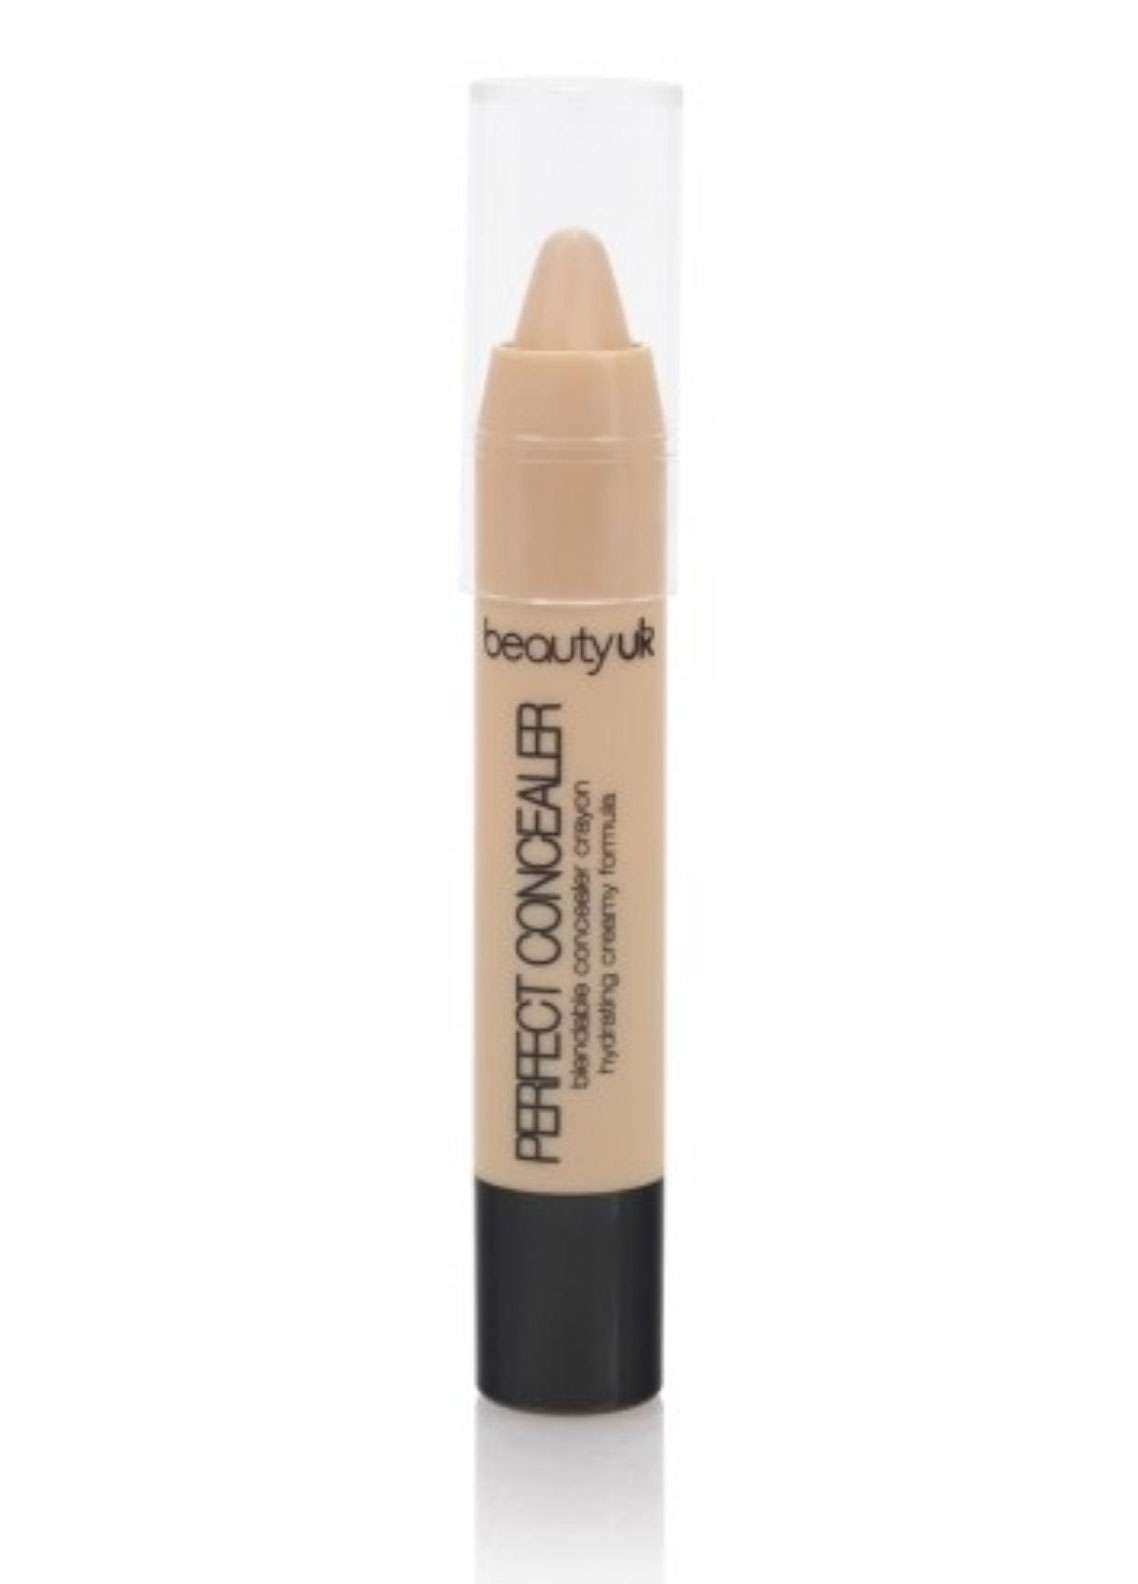 Beauty UK Perfect Concealer Crayon - 1 Light